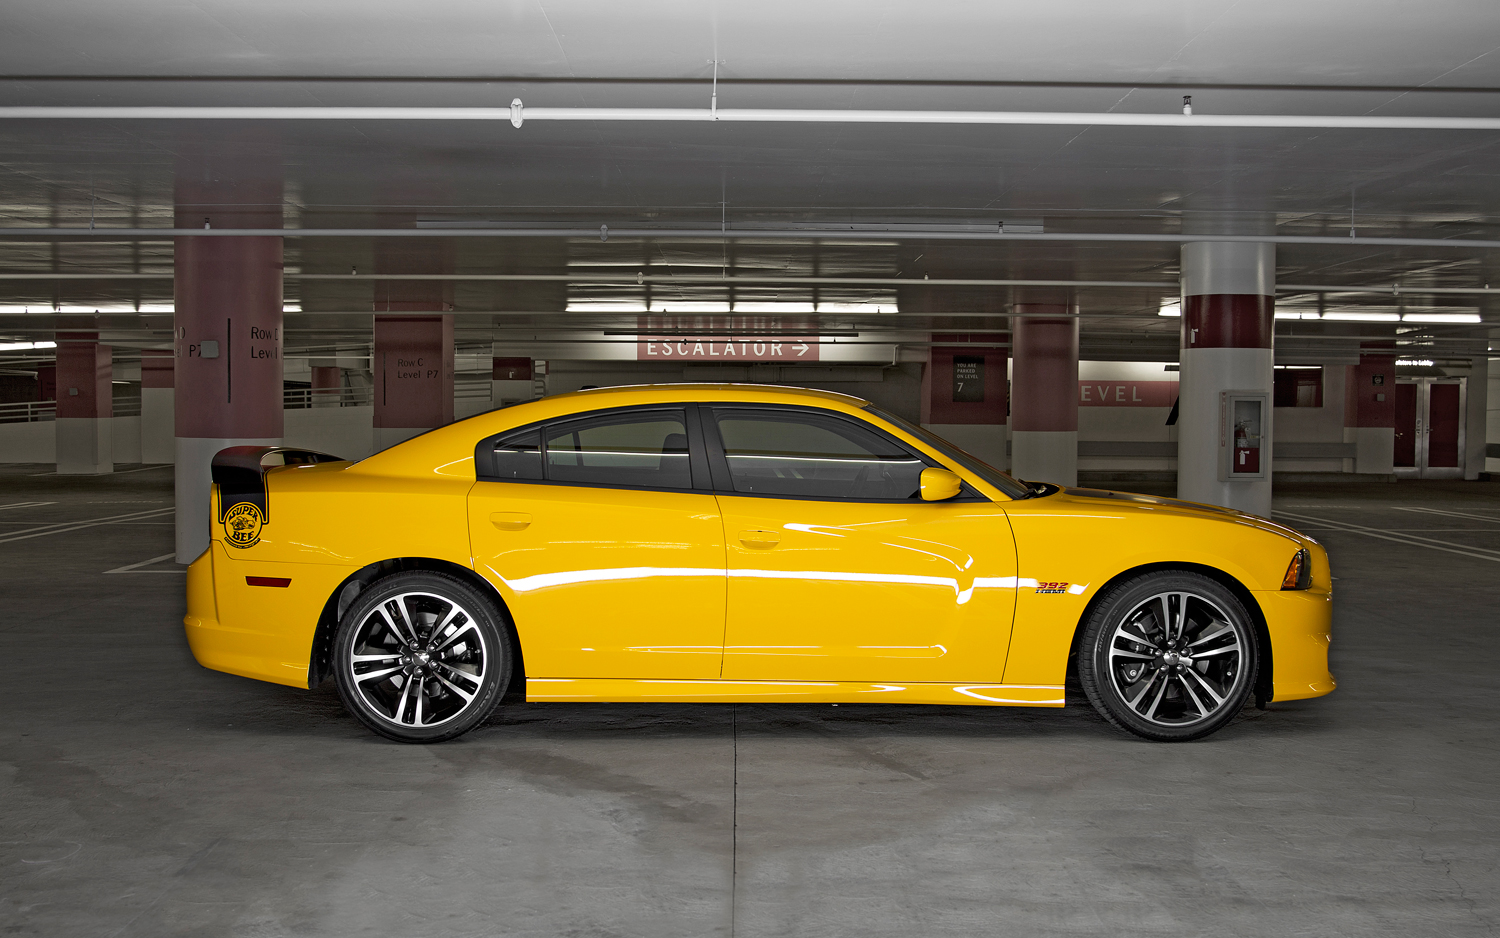 2019 Dodge Charger Srt8 Super Bee Car Photos Catalog 2019